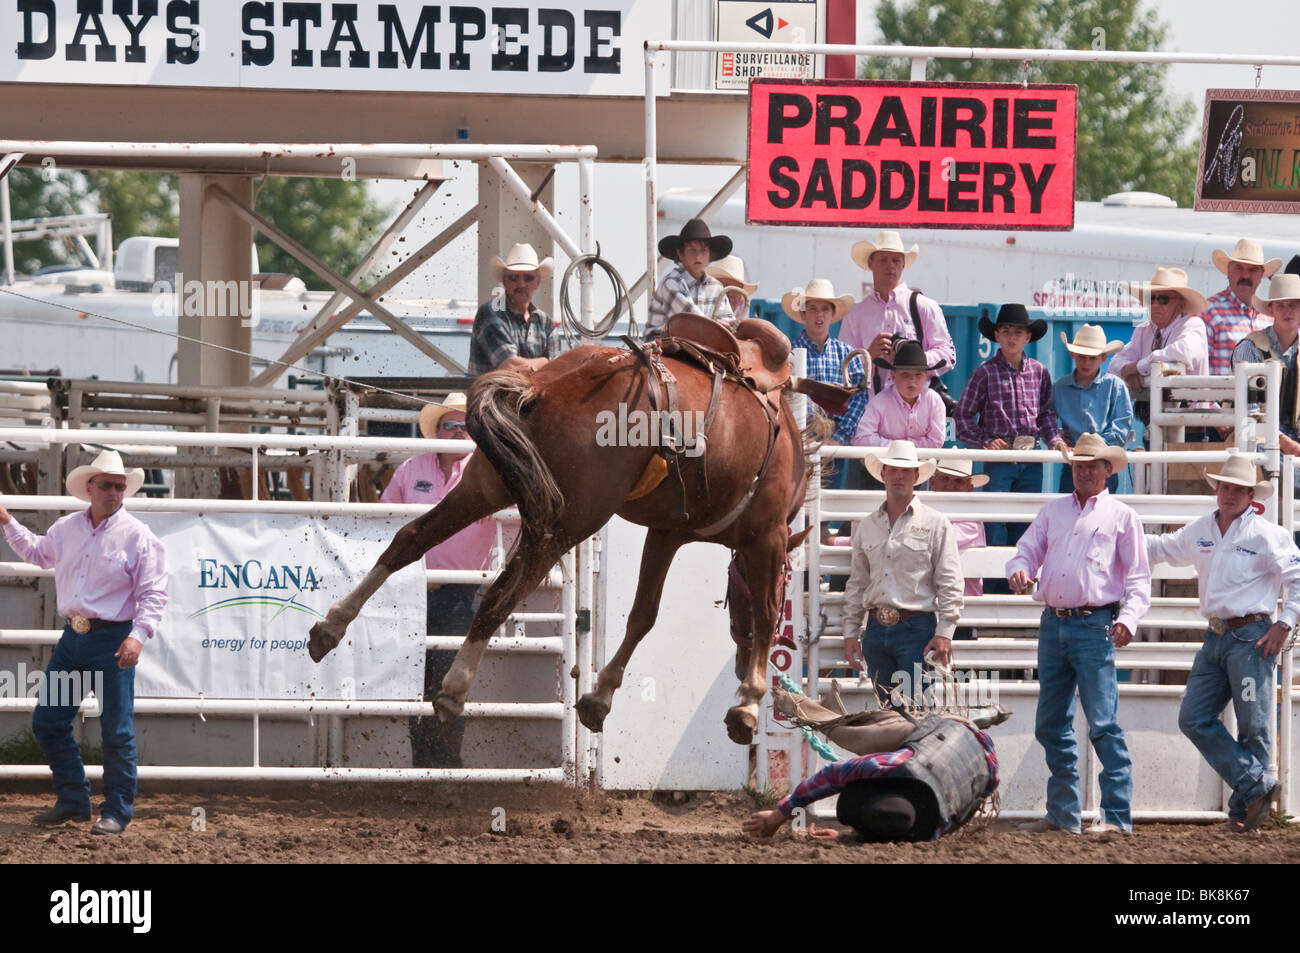 Cowboy thrown from his horse, saddle bronc riding, Strathmore Stock